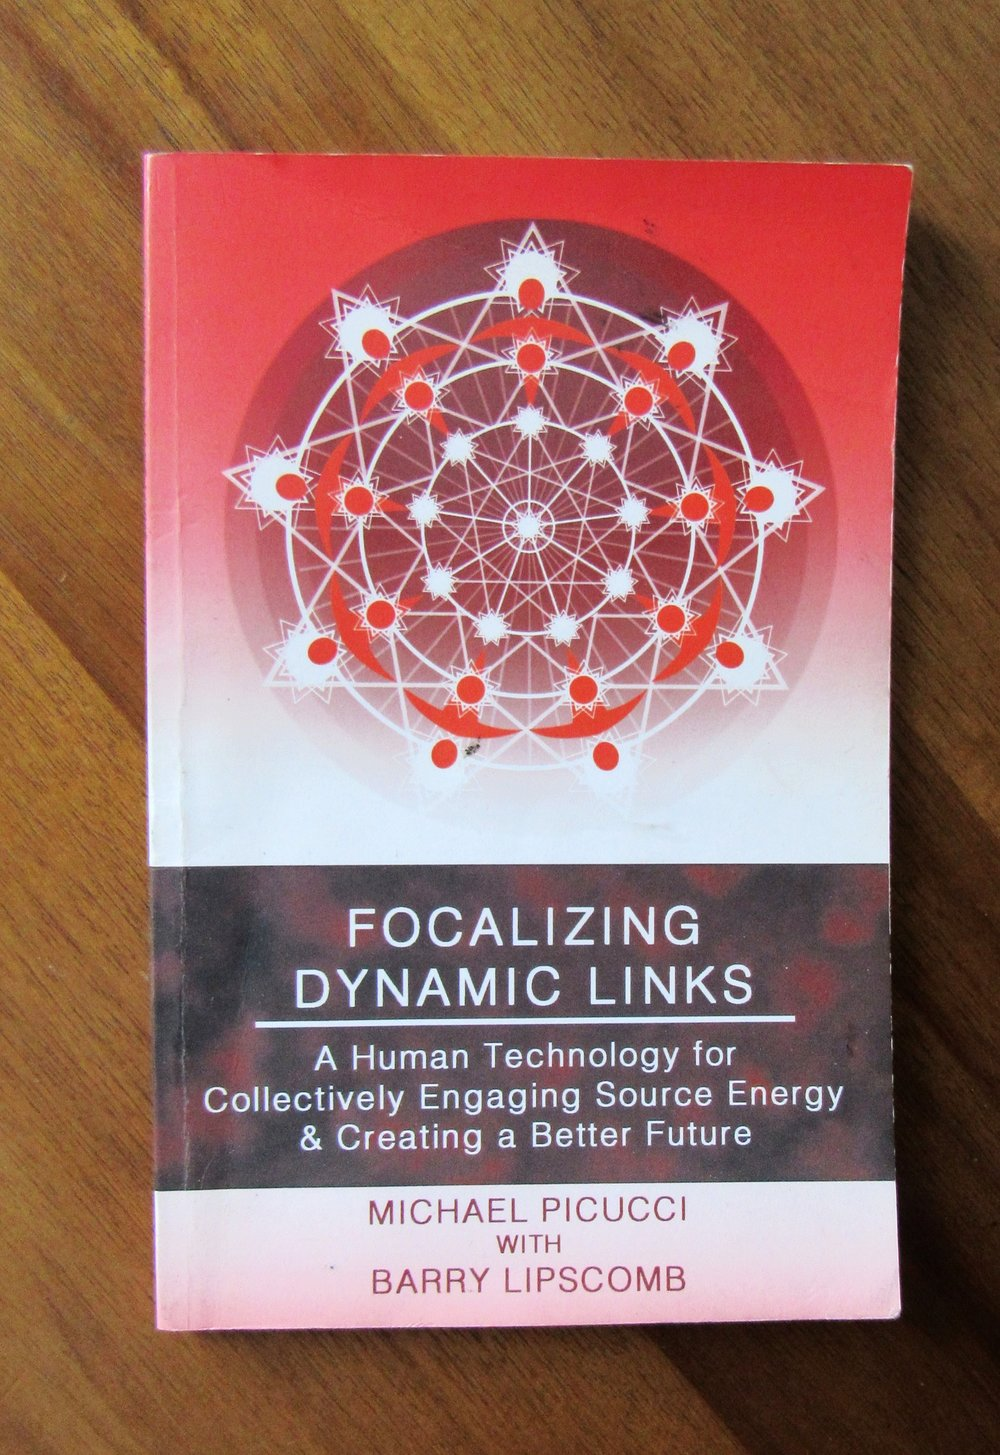 Focalizing Dynamic Links      Focalizing Dynamic Links   is a technology which brings conscious intention to relationship in order to foster an opportunity for connecting and communicating in a new way, effecting transformation through our institutions and organizations.